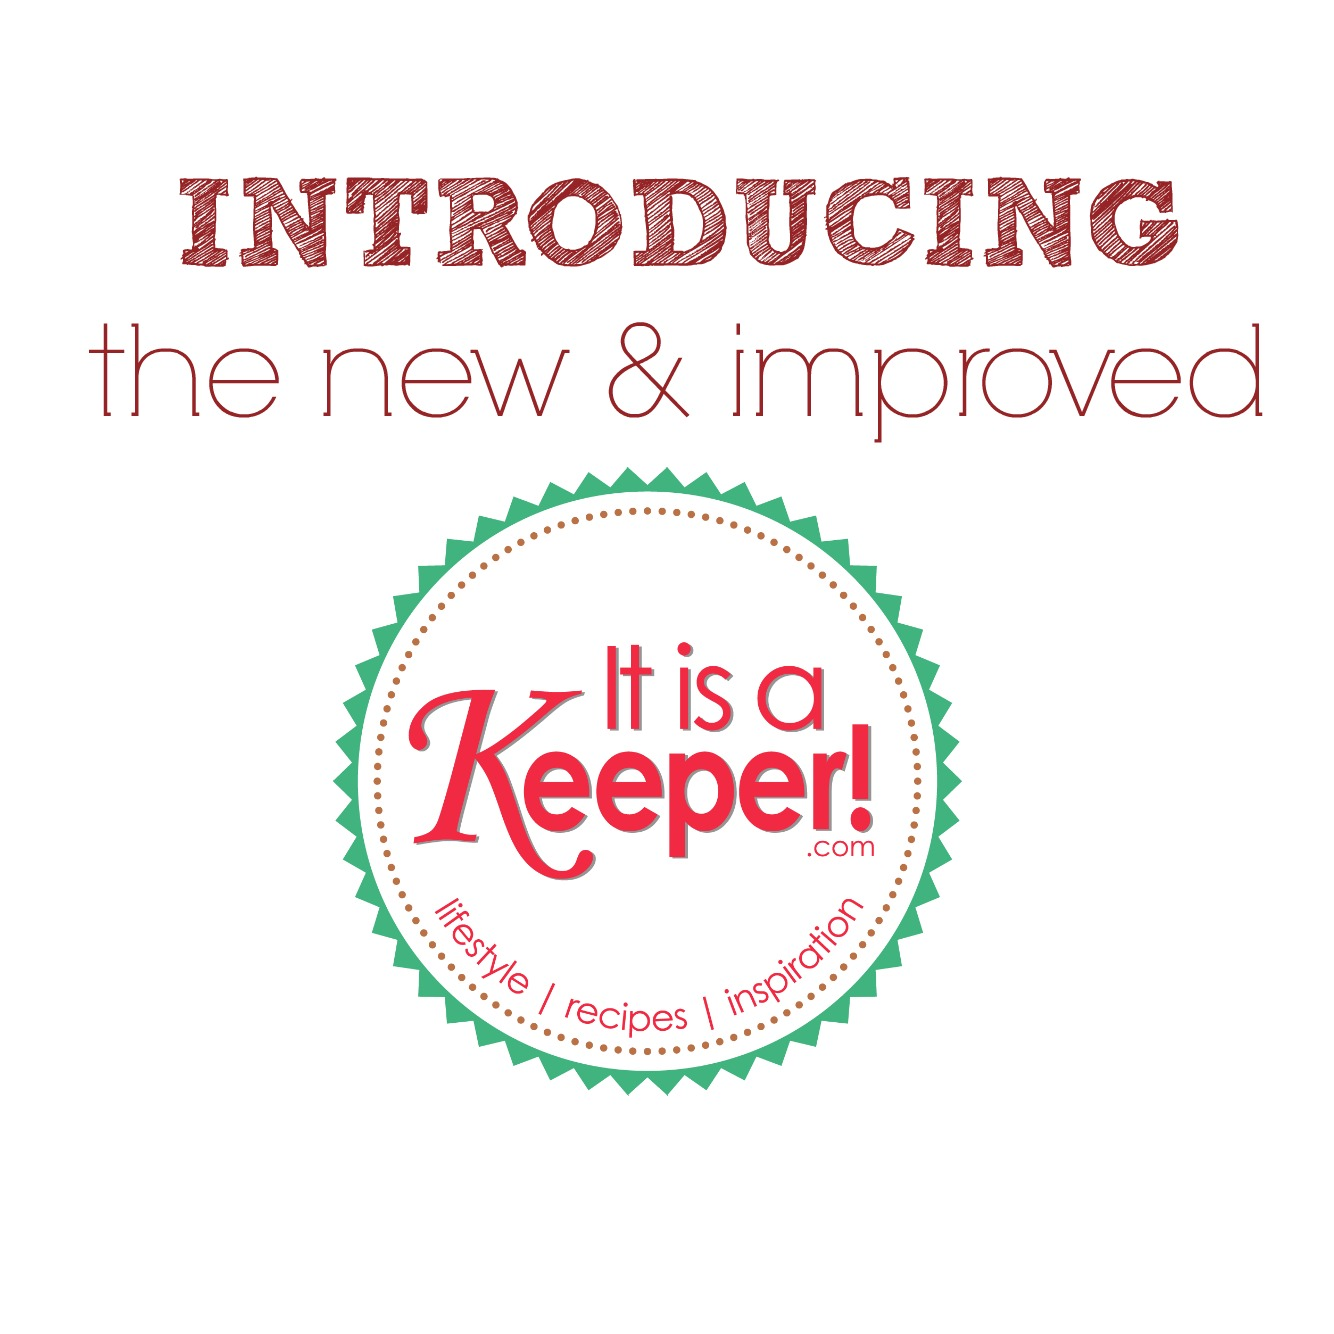 It's a Keeper's New Look!